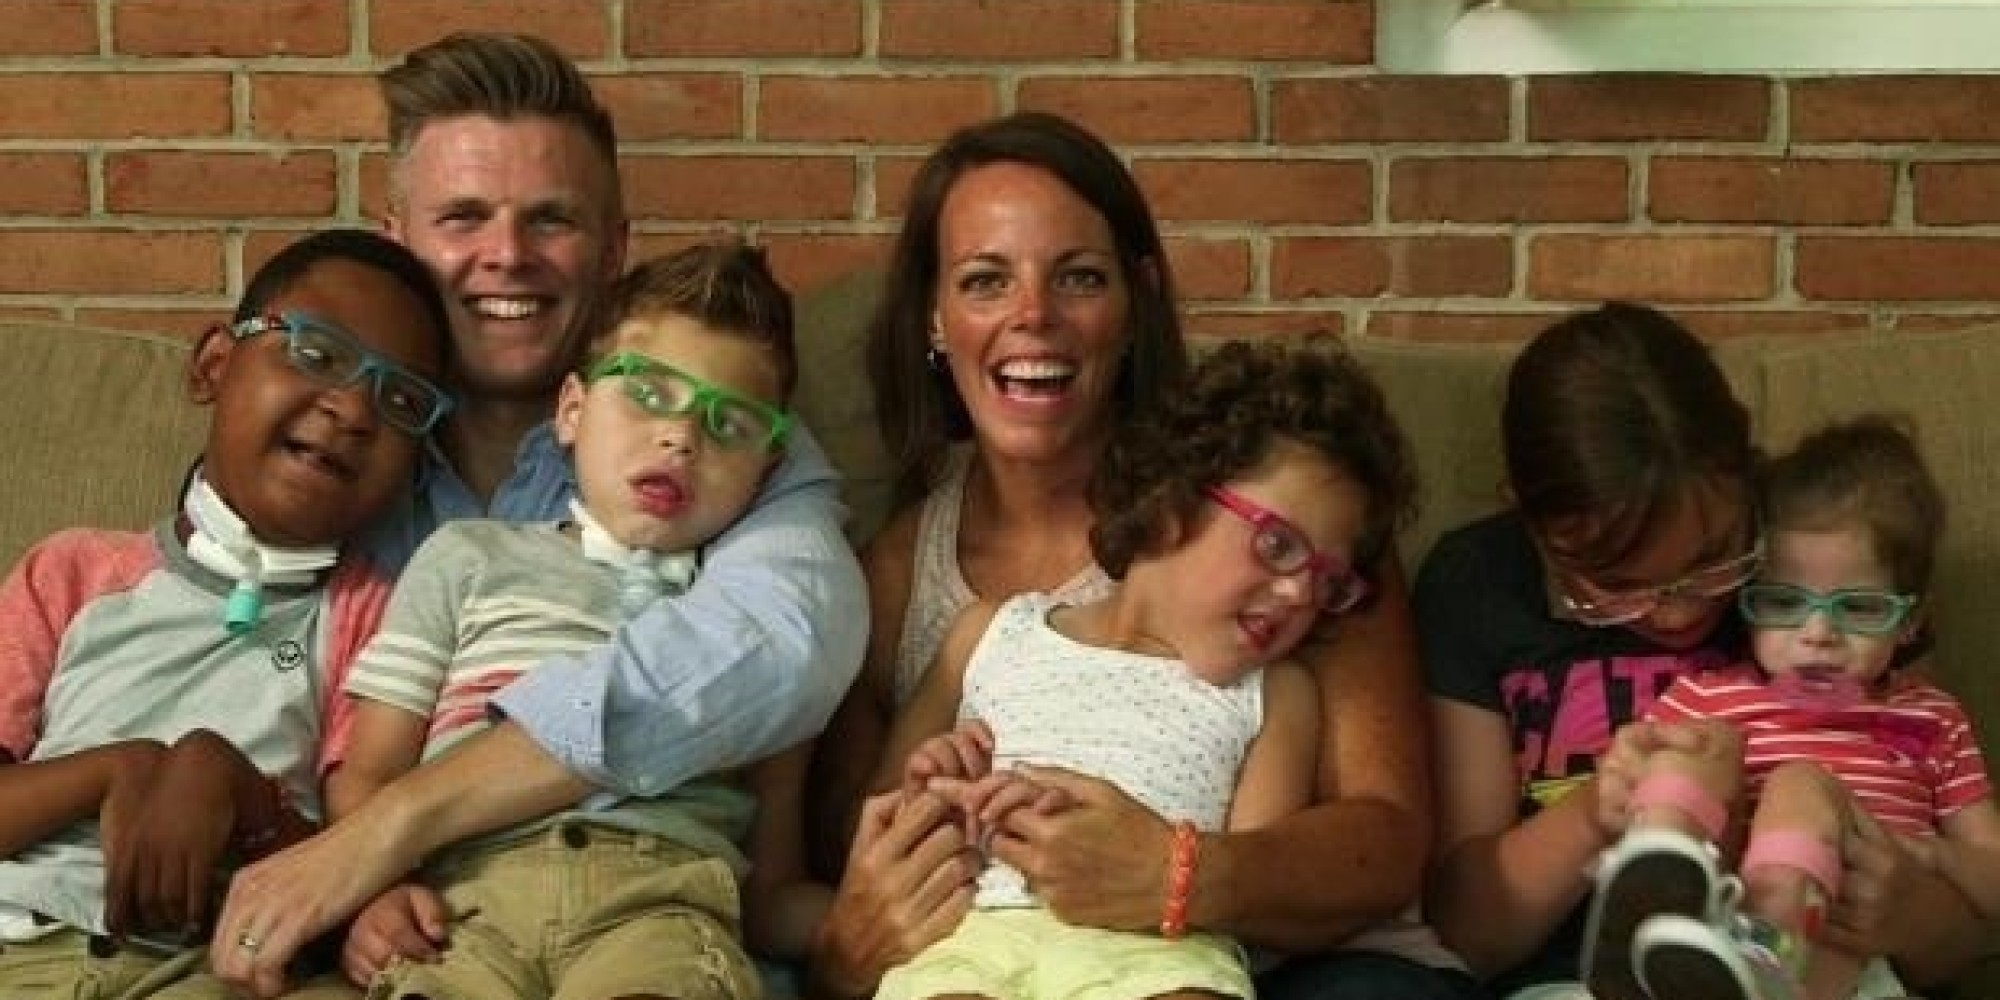 Couple Expands Family With Special Needs Adoption Huffpost